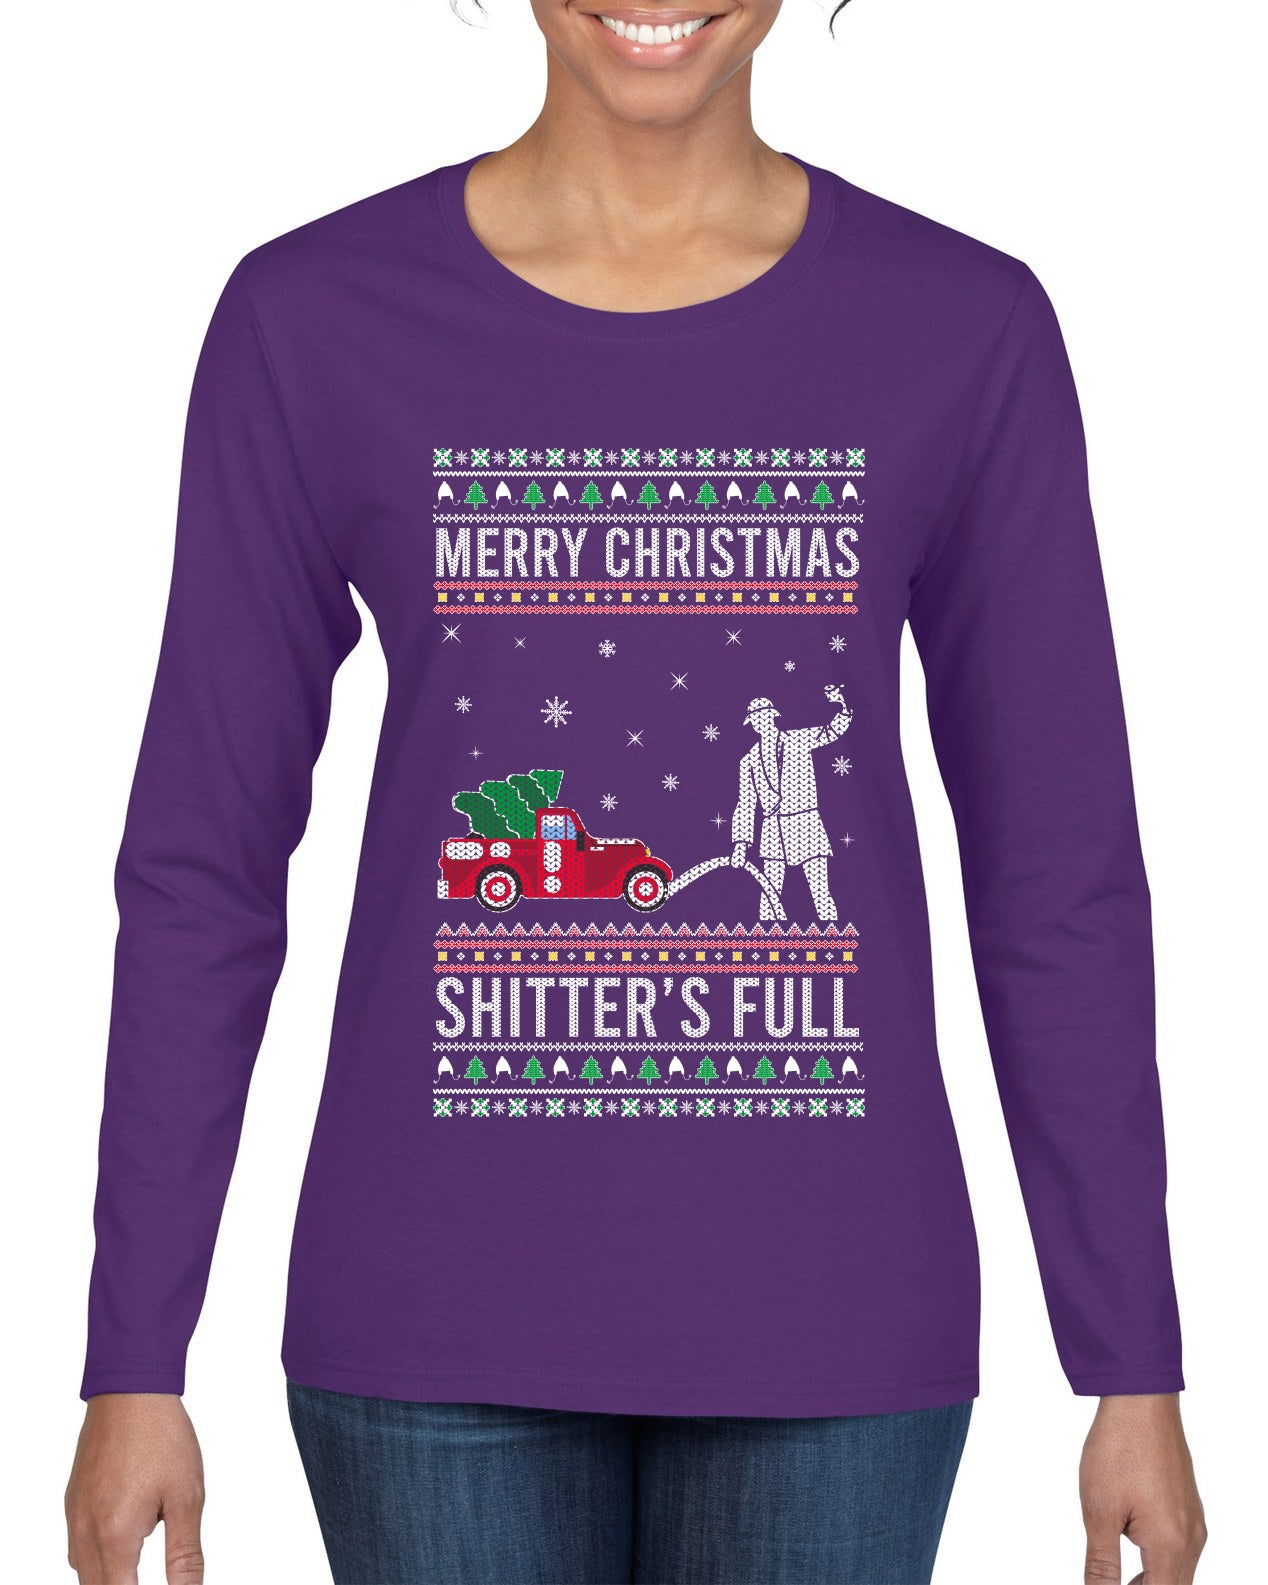 Merry Christmas Shitter's Full Christmas Vacation Ugly Christmas Sweater Womens Graphic Long Sleeve T-Shirt